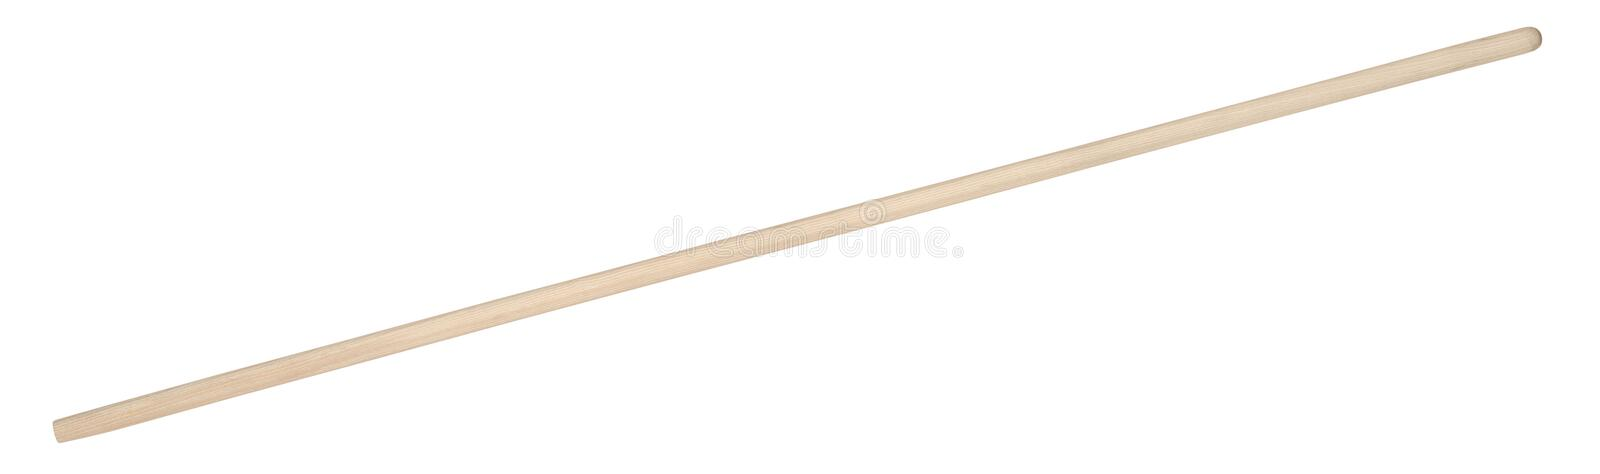 Wooden handle royalty free stock image